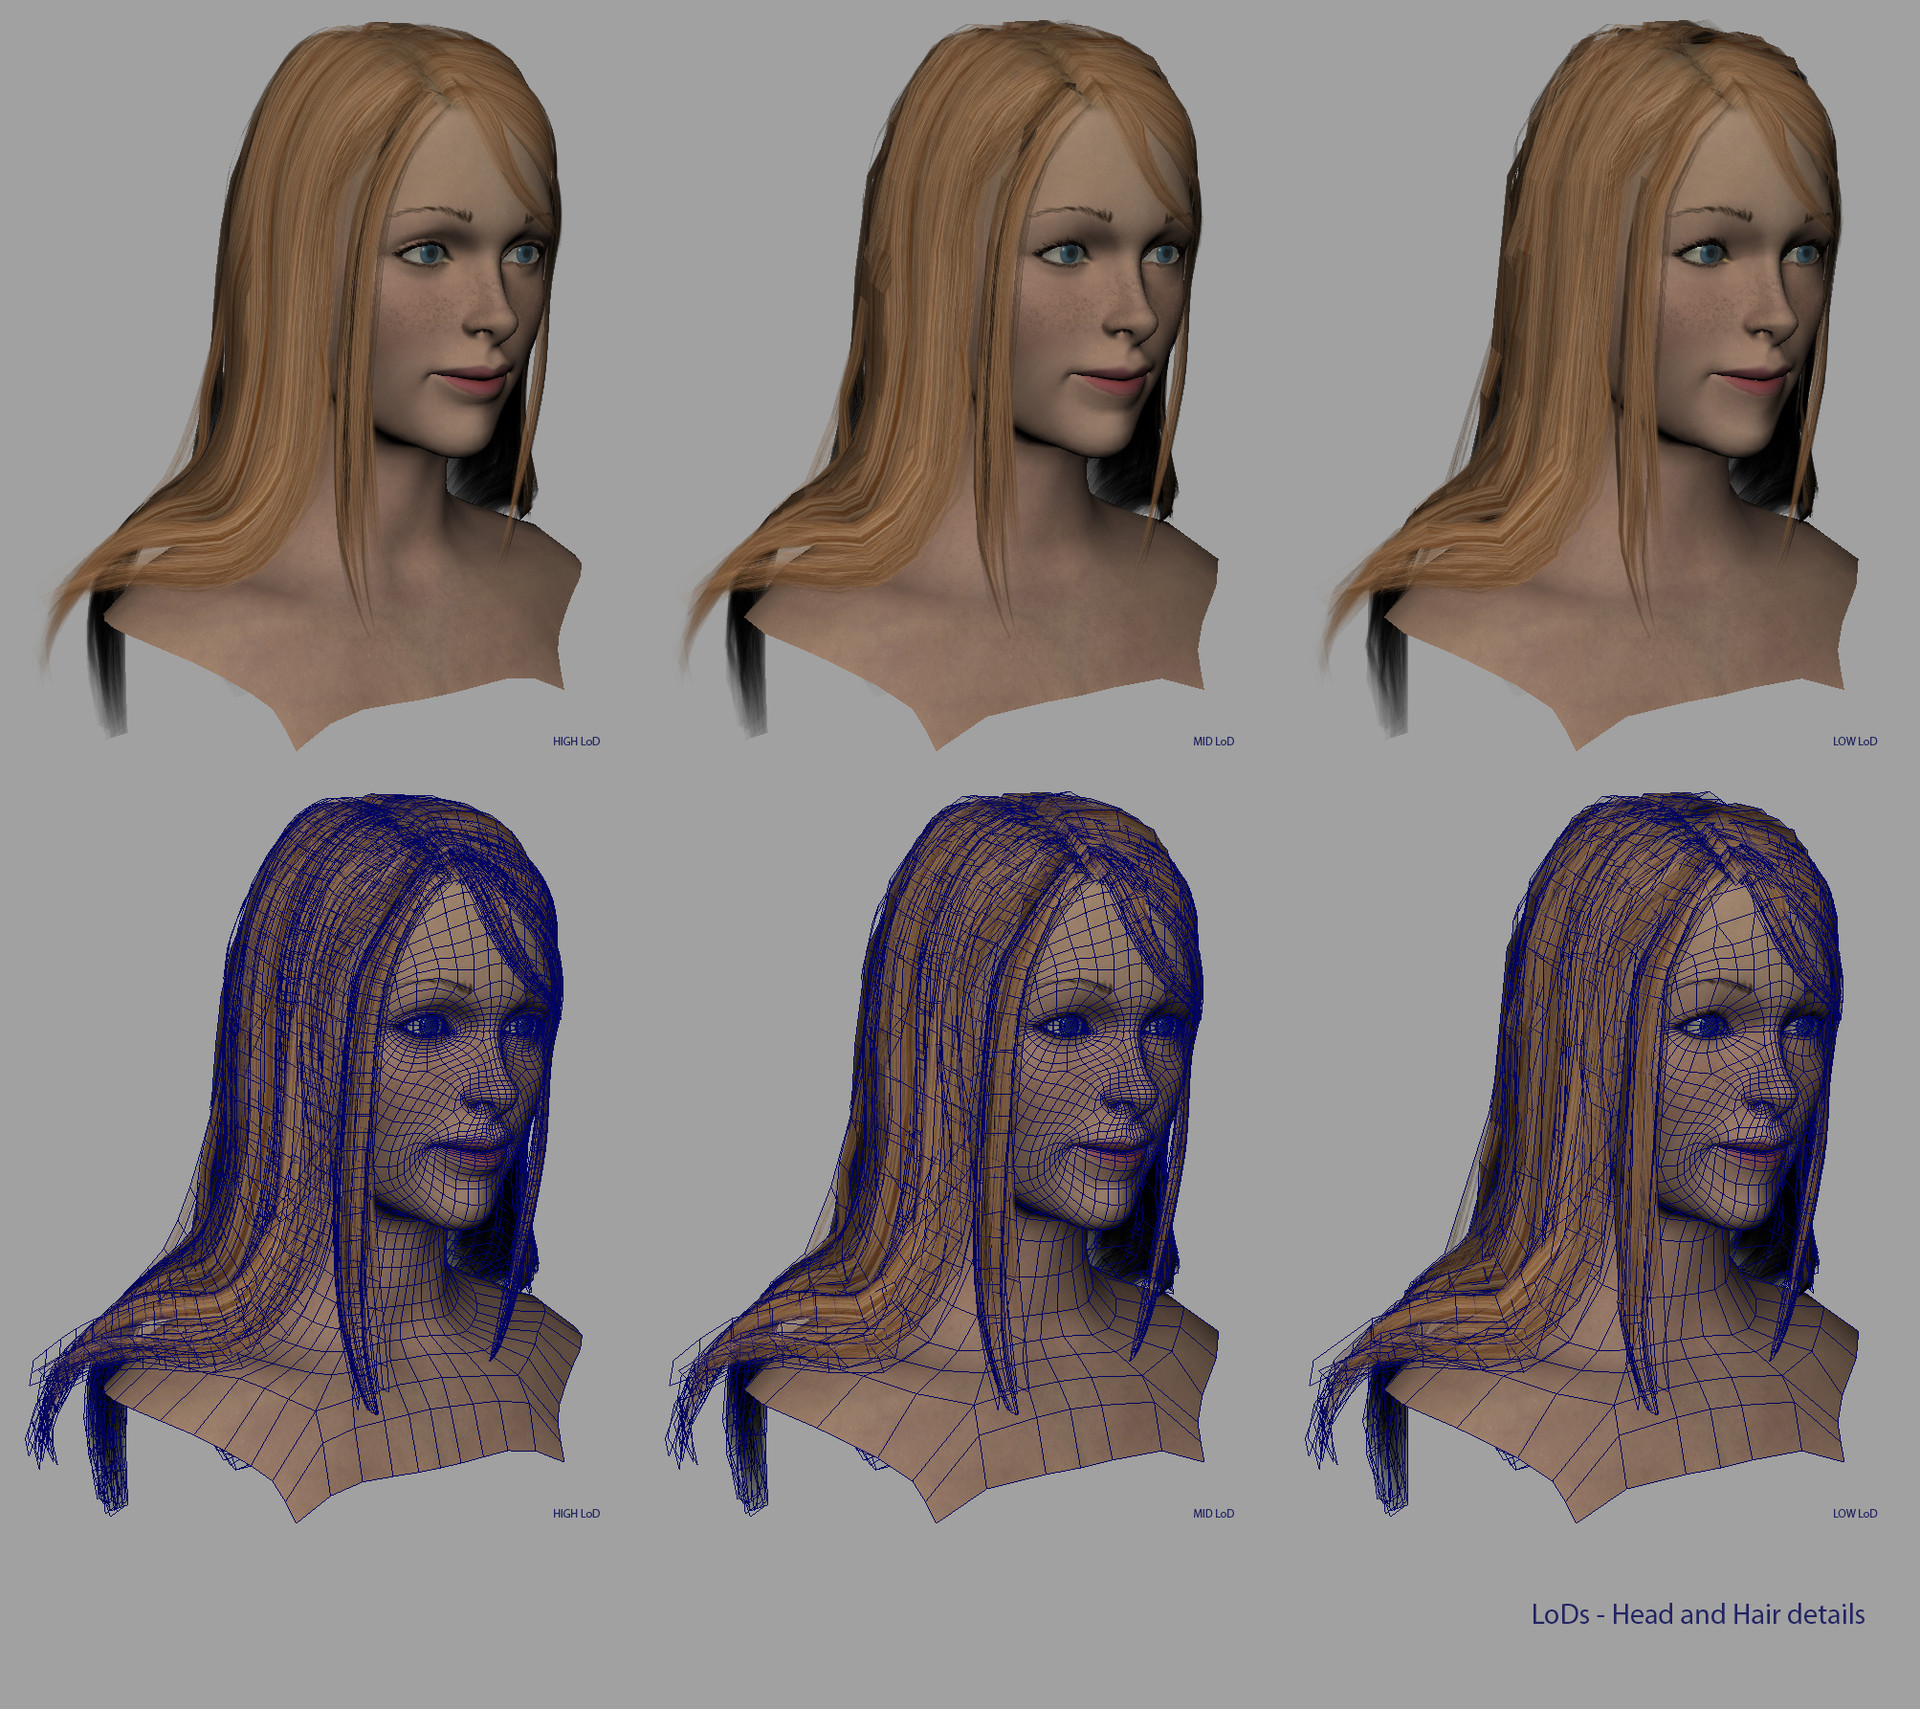 LoDs (levels of details) - detail on Head and Hair